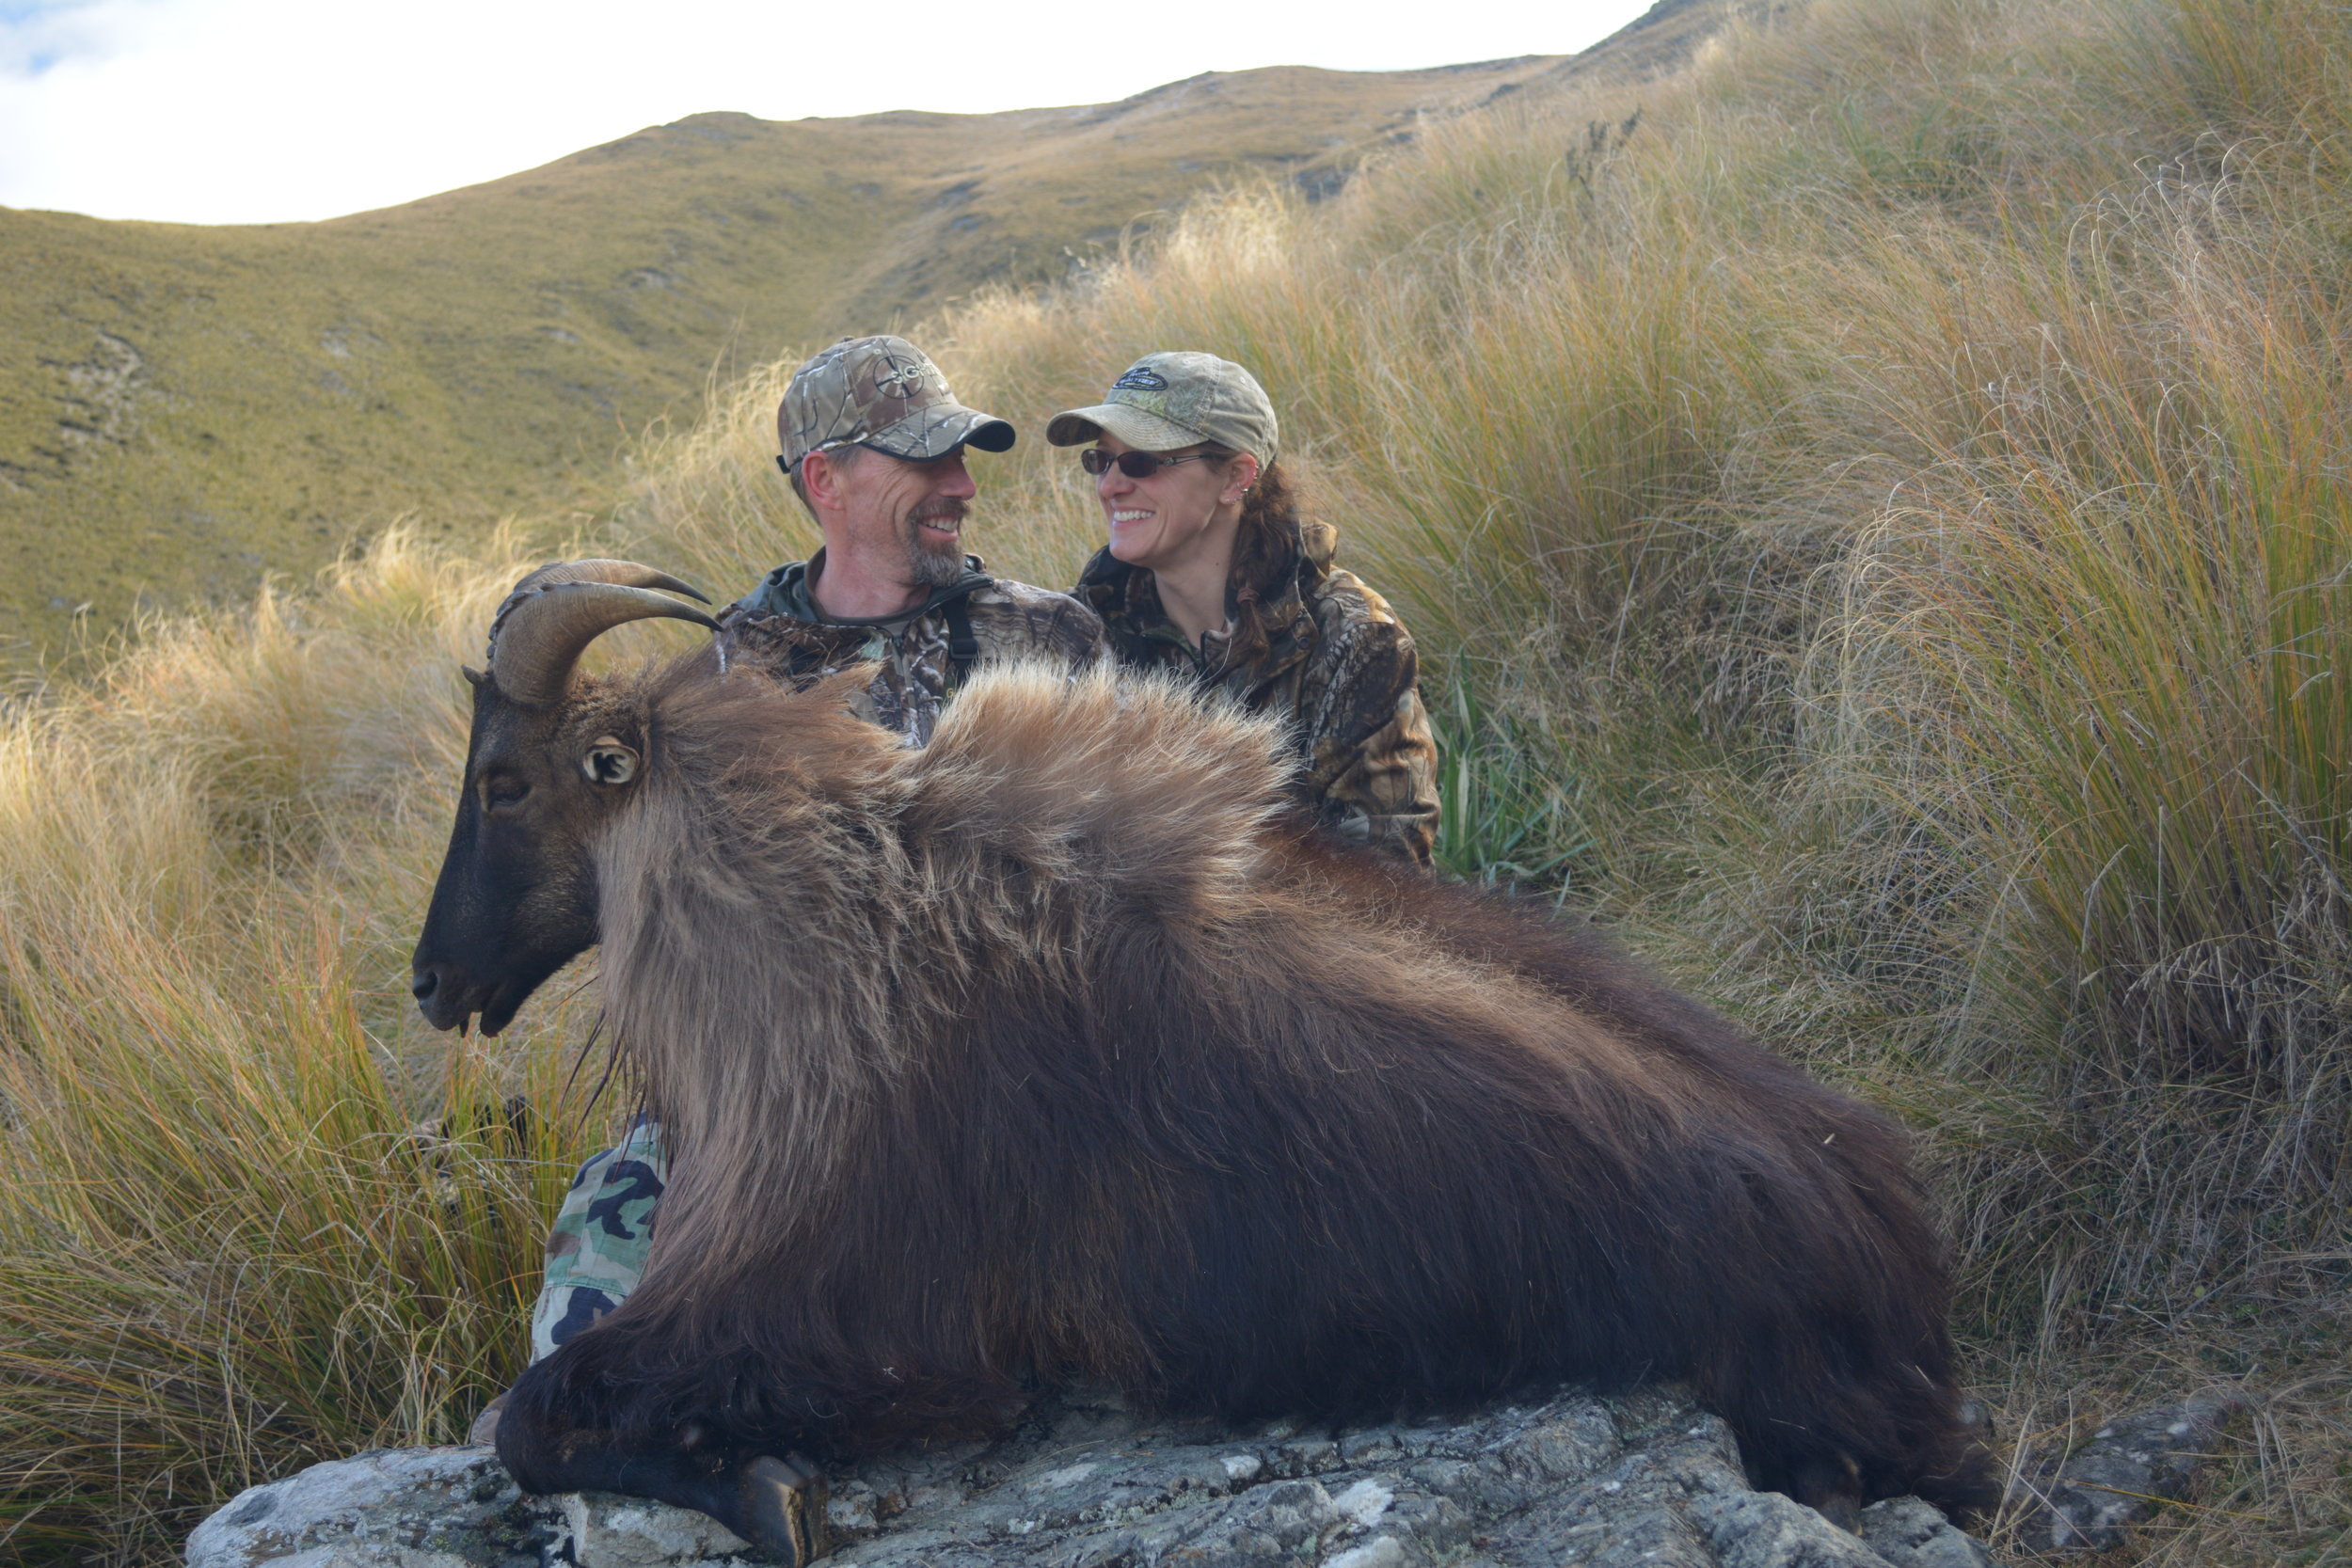 Couple hunts in NZ